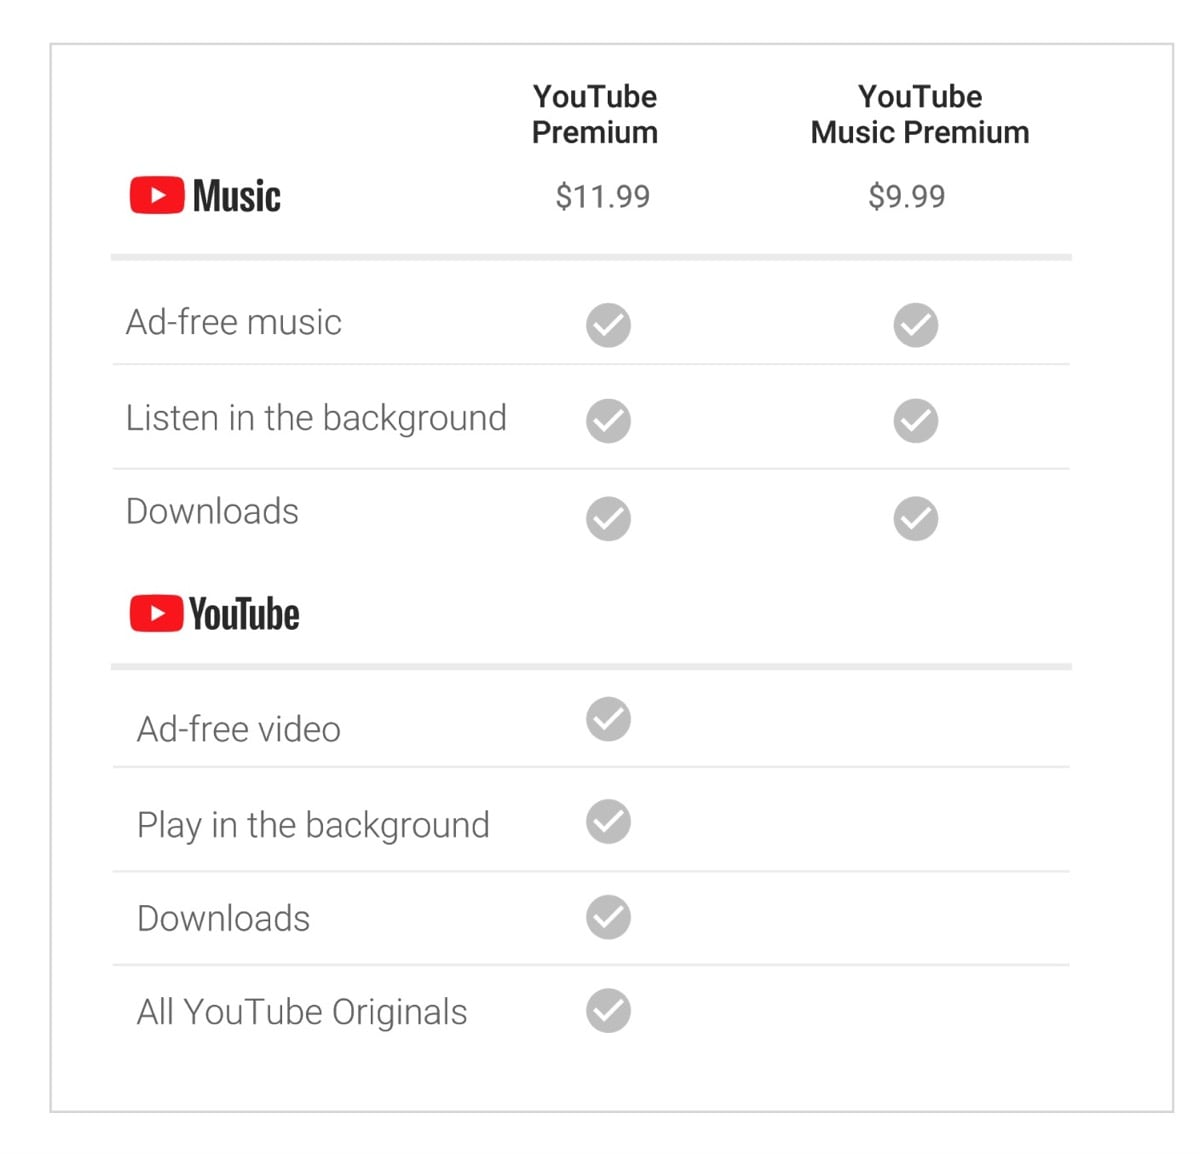 Youtube Music Ist Offiziell Lost Youtube Red Ab Startet